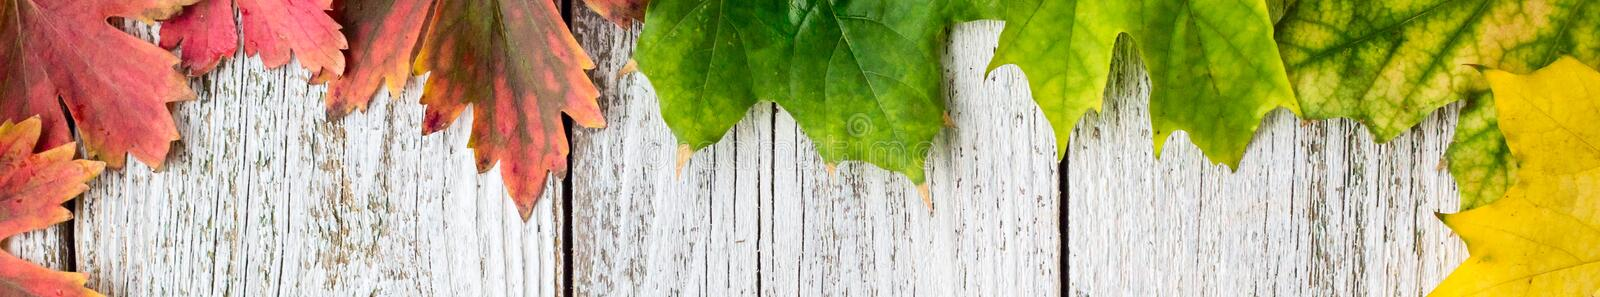 Banner of Seasonal frame of autumnal maple leaves with gradient color on white wooden background royalty free stock photo